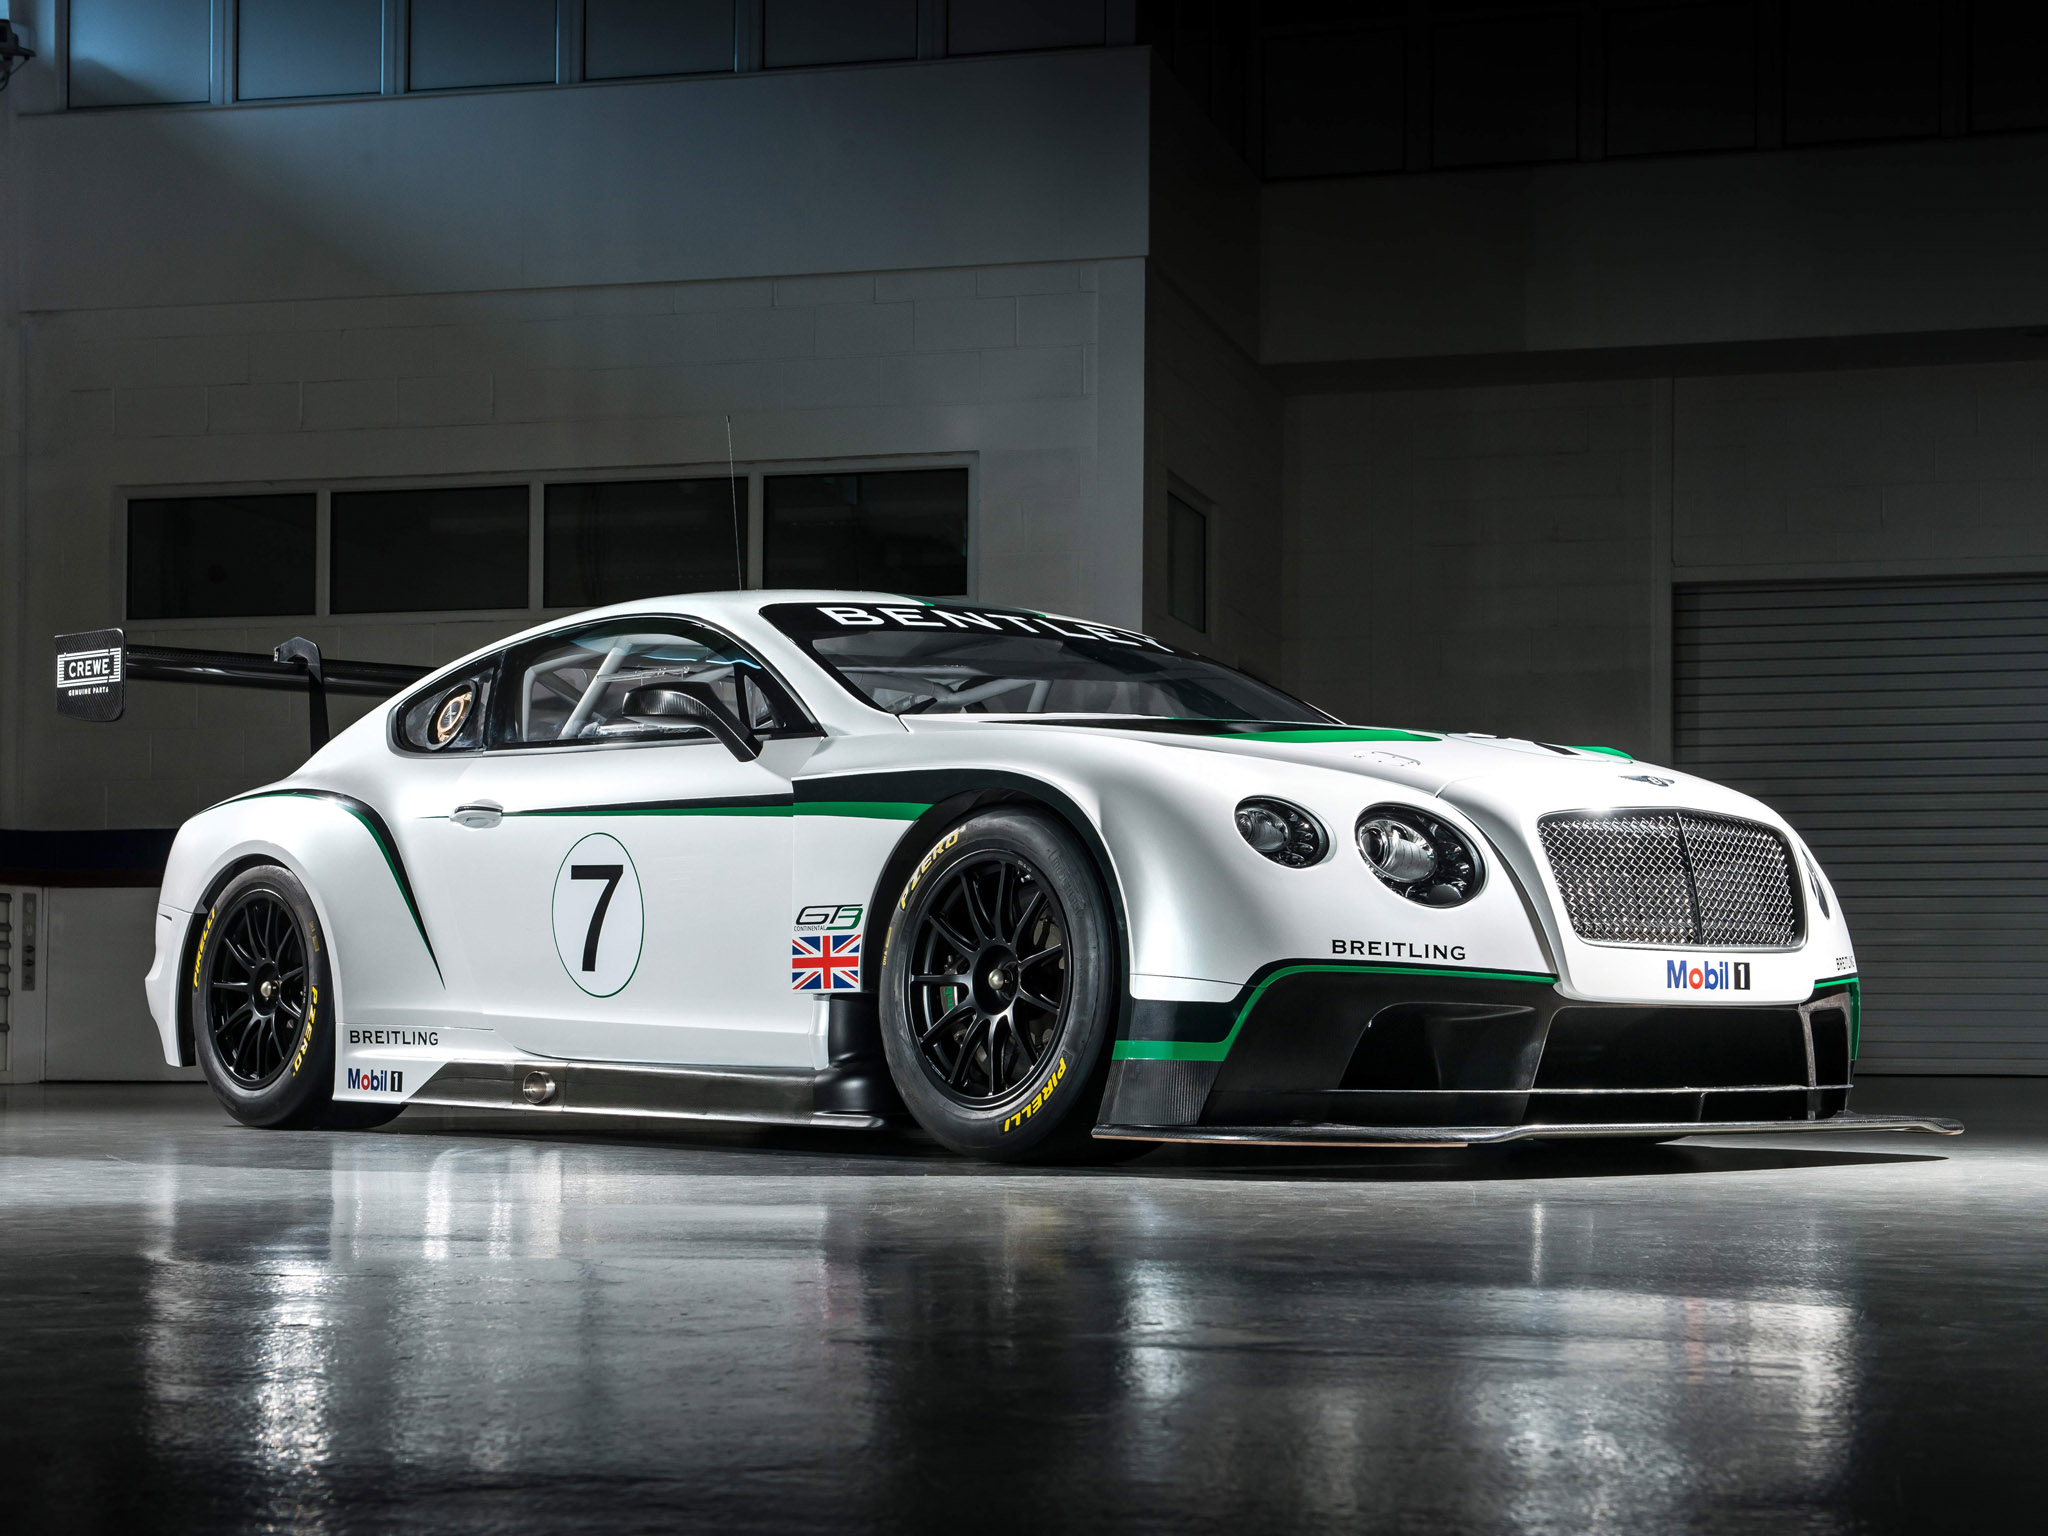 2013 Bentley Continental GT3 Supercar Supercars Race